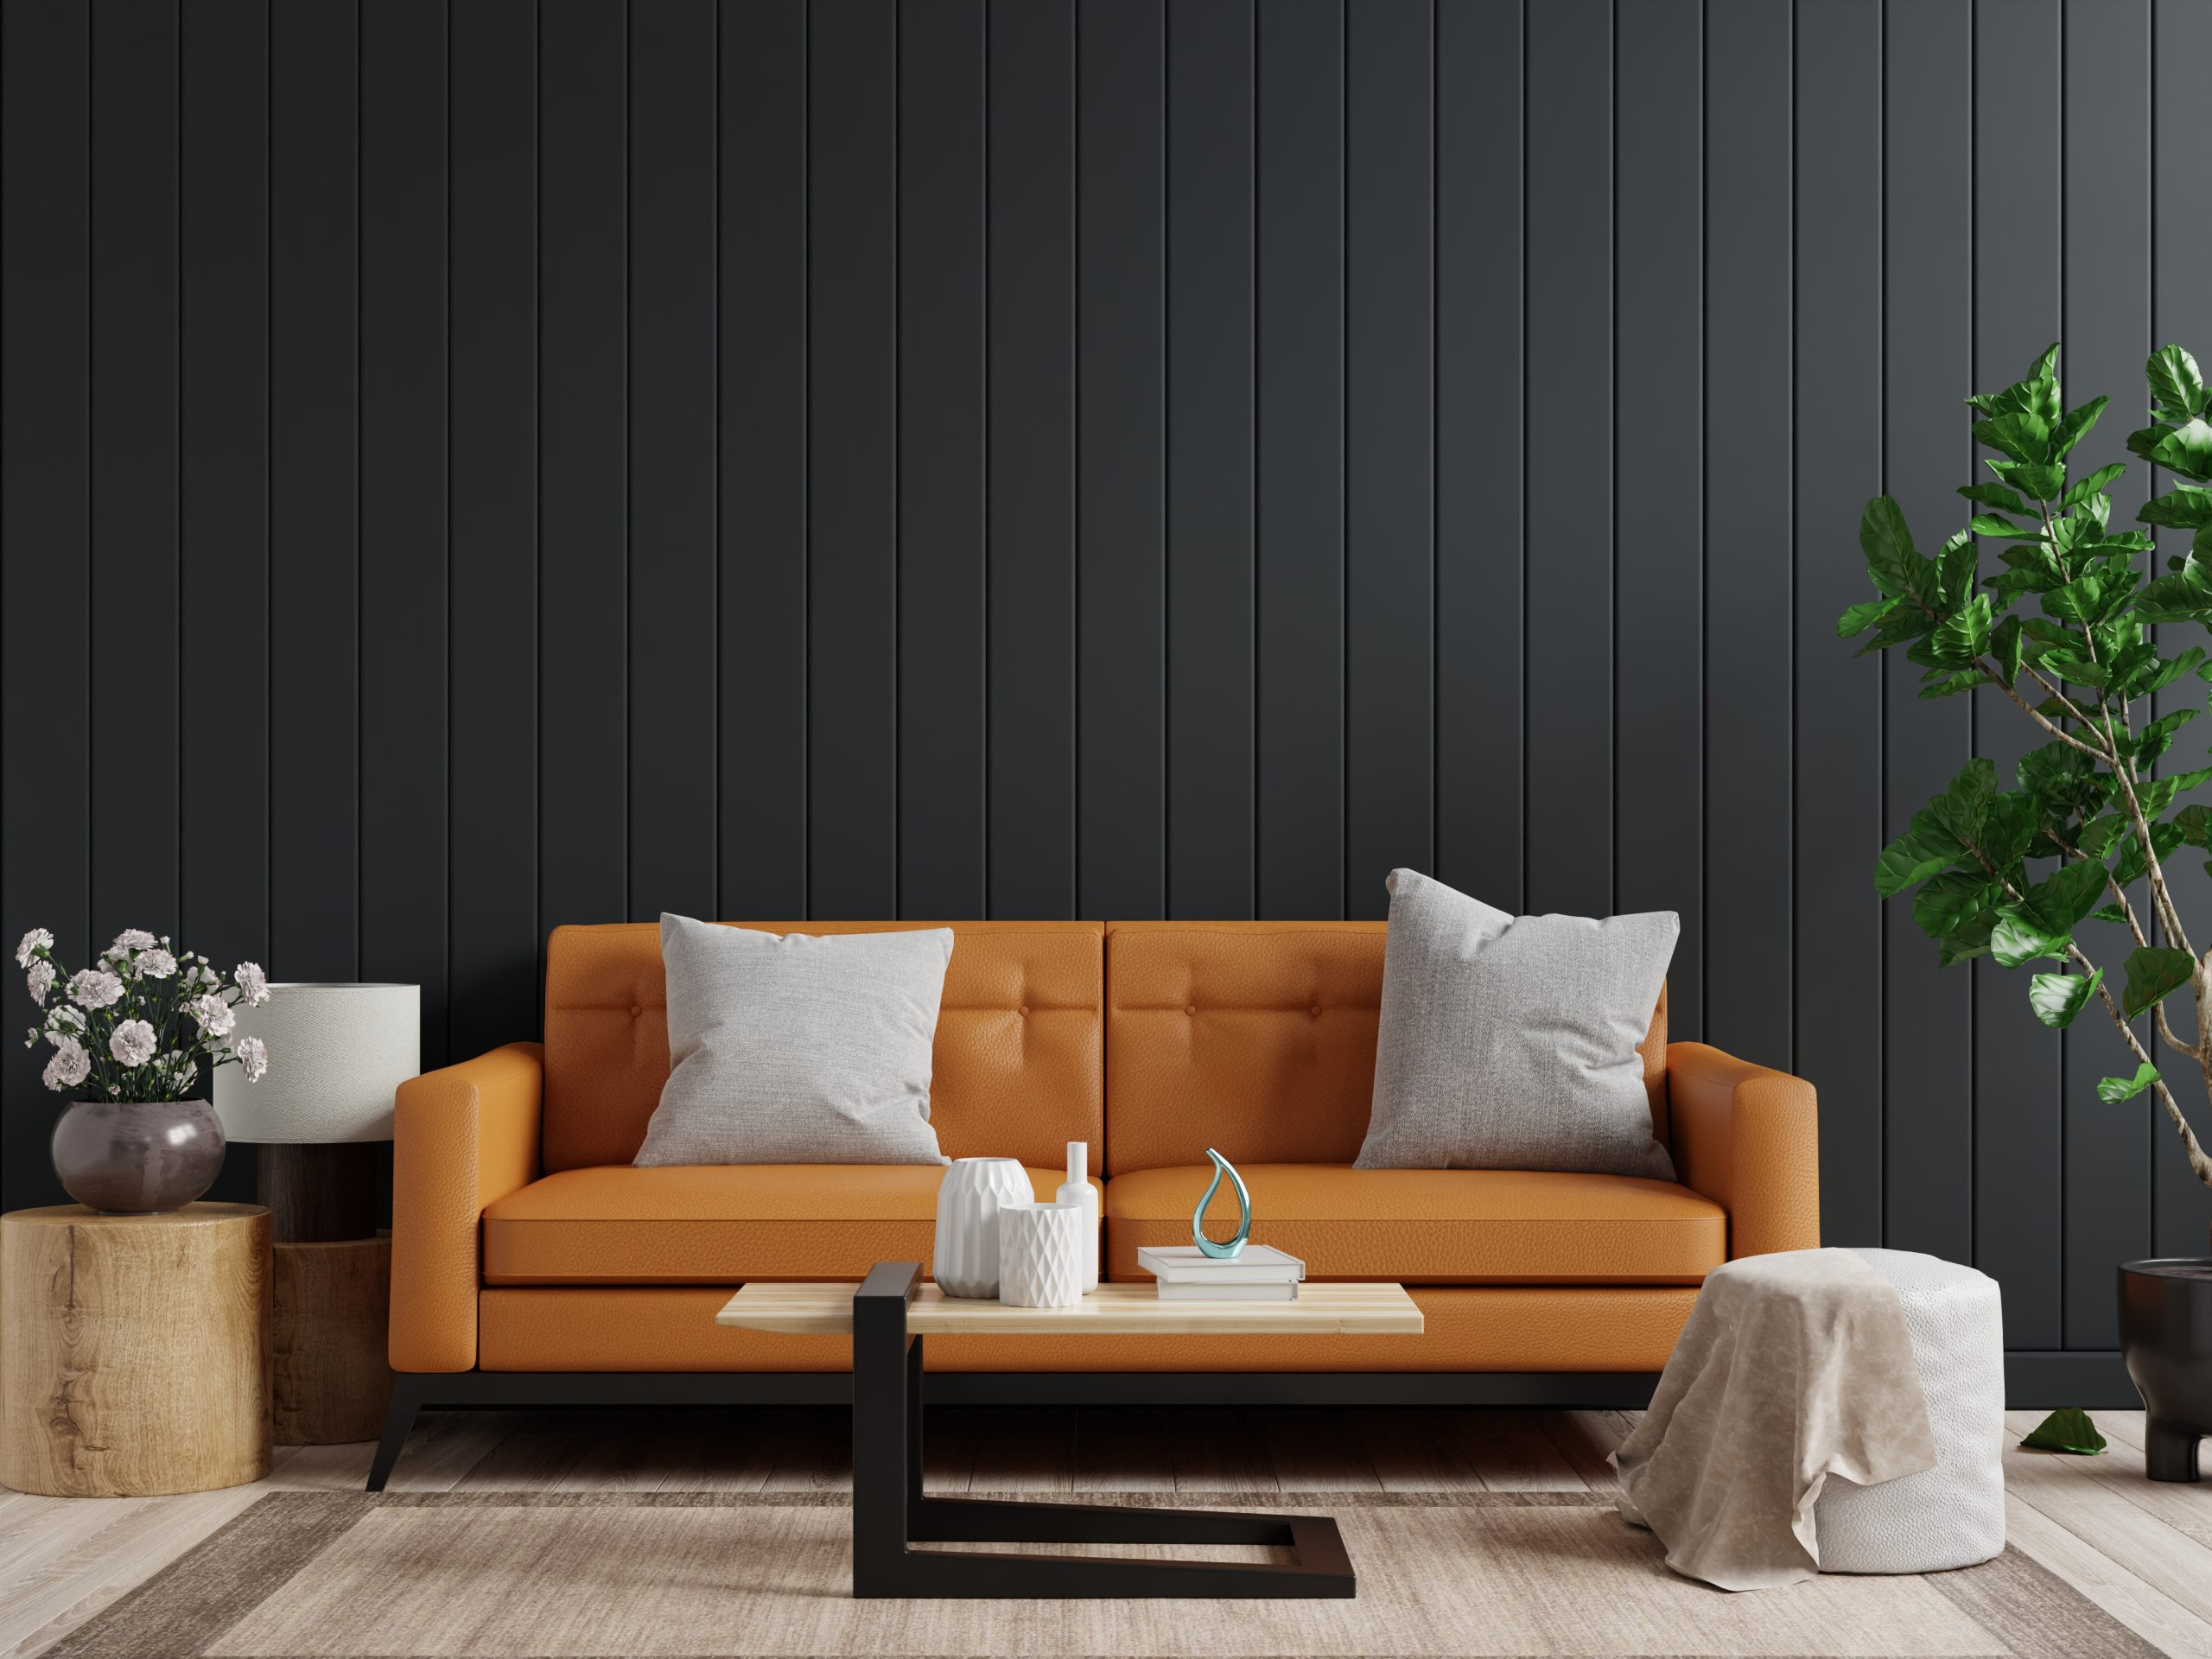 Mockup wall in dark living room interior background with Leather sofa and table on empty dark wooden wall background,3d rendering